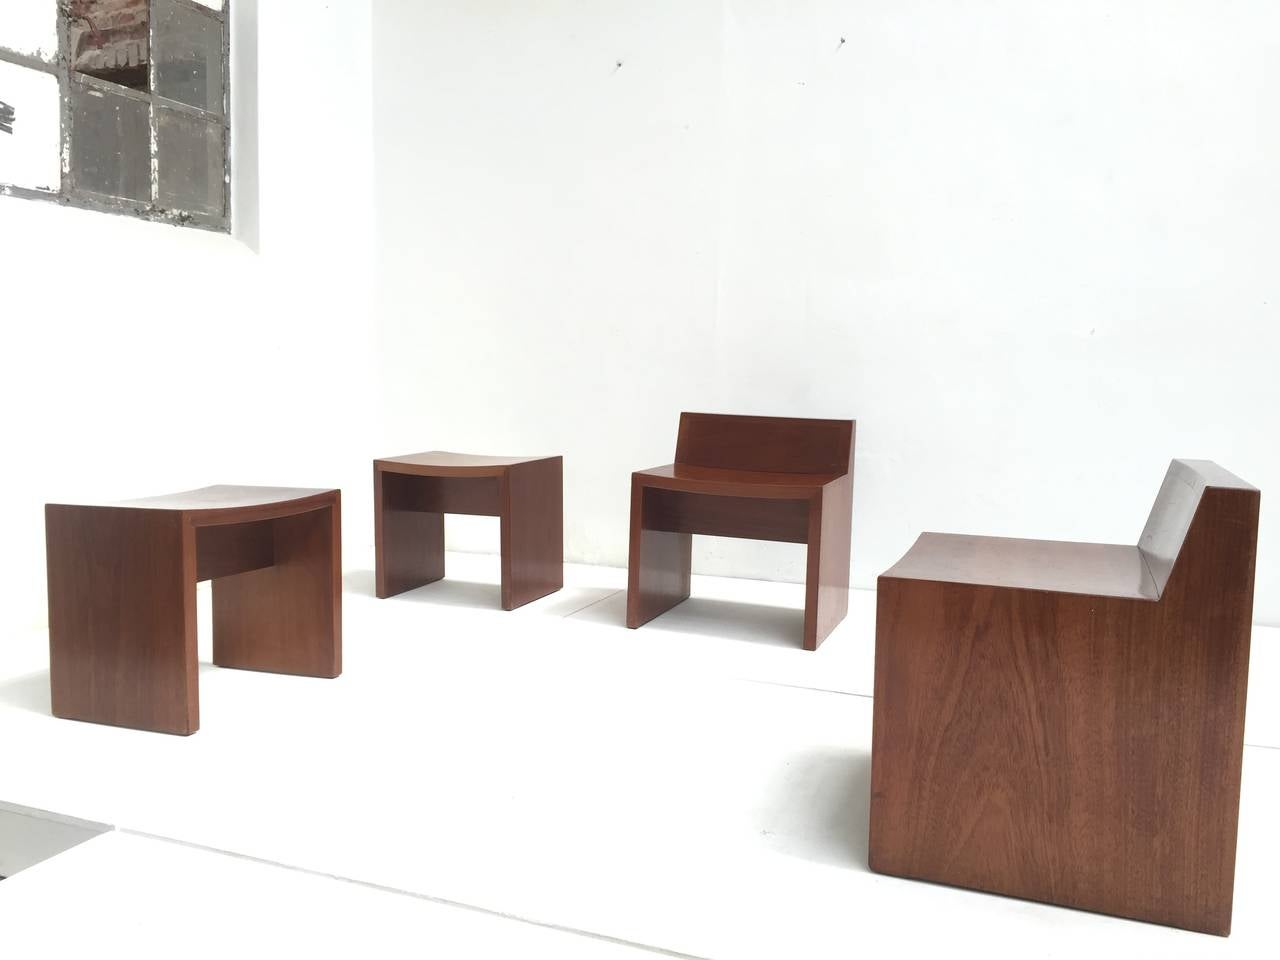 Carved Unique Set of Solid Mahogany Church Seats by Dutch Architect Harry Nefkens, 1963 For Sale